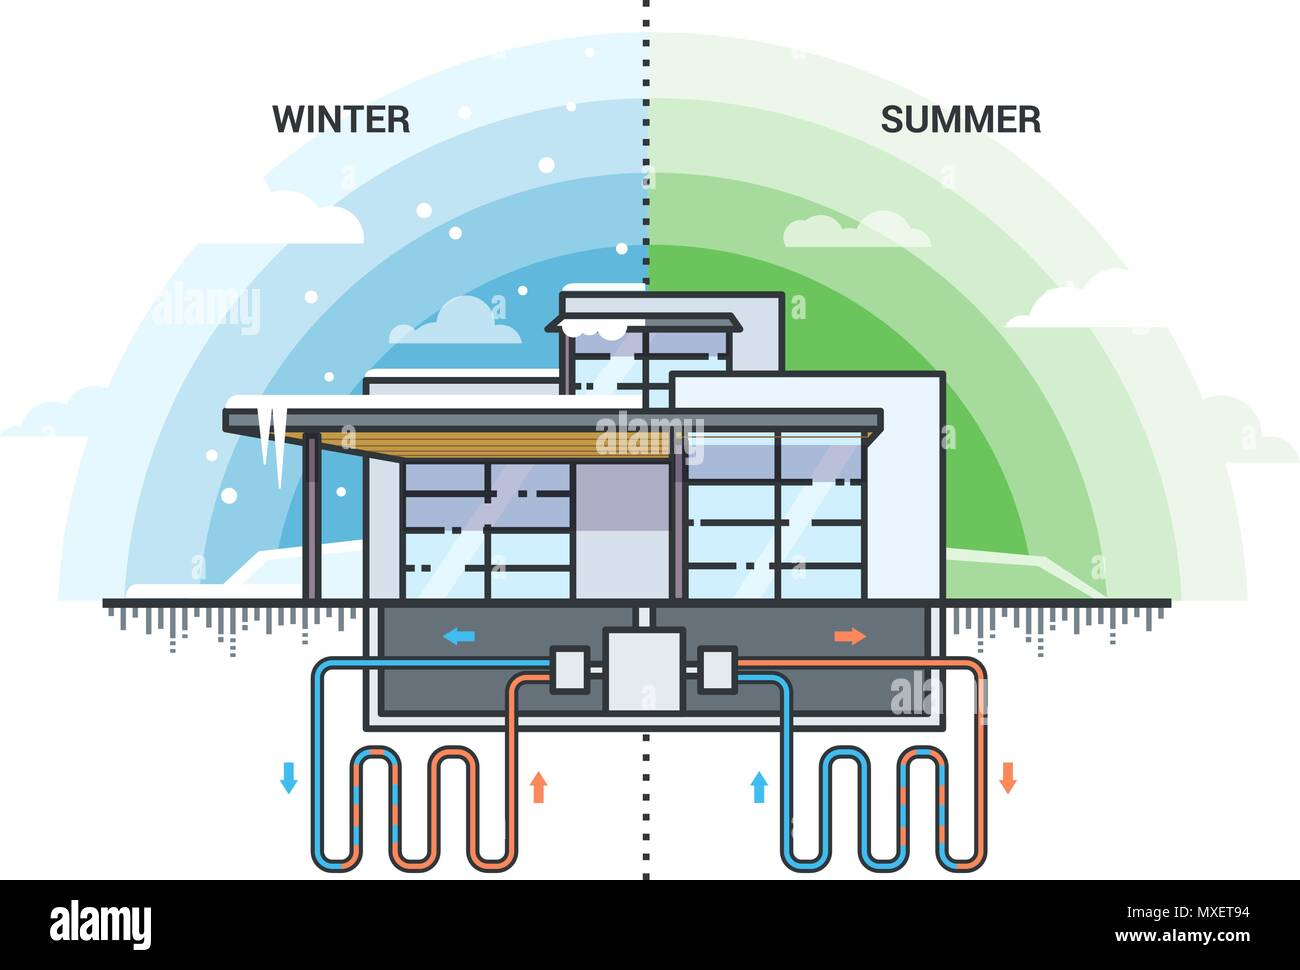 hight resolution of geothervector illustration of modern house with system of using of geothermal energy for heating eco